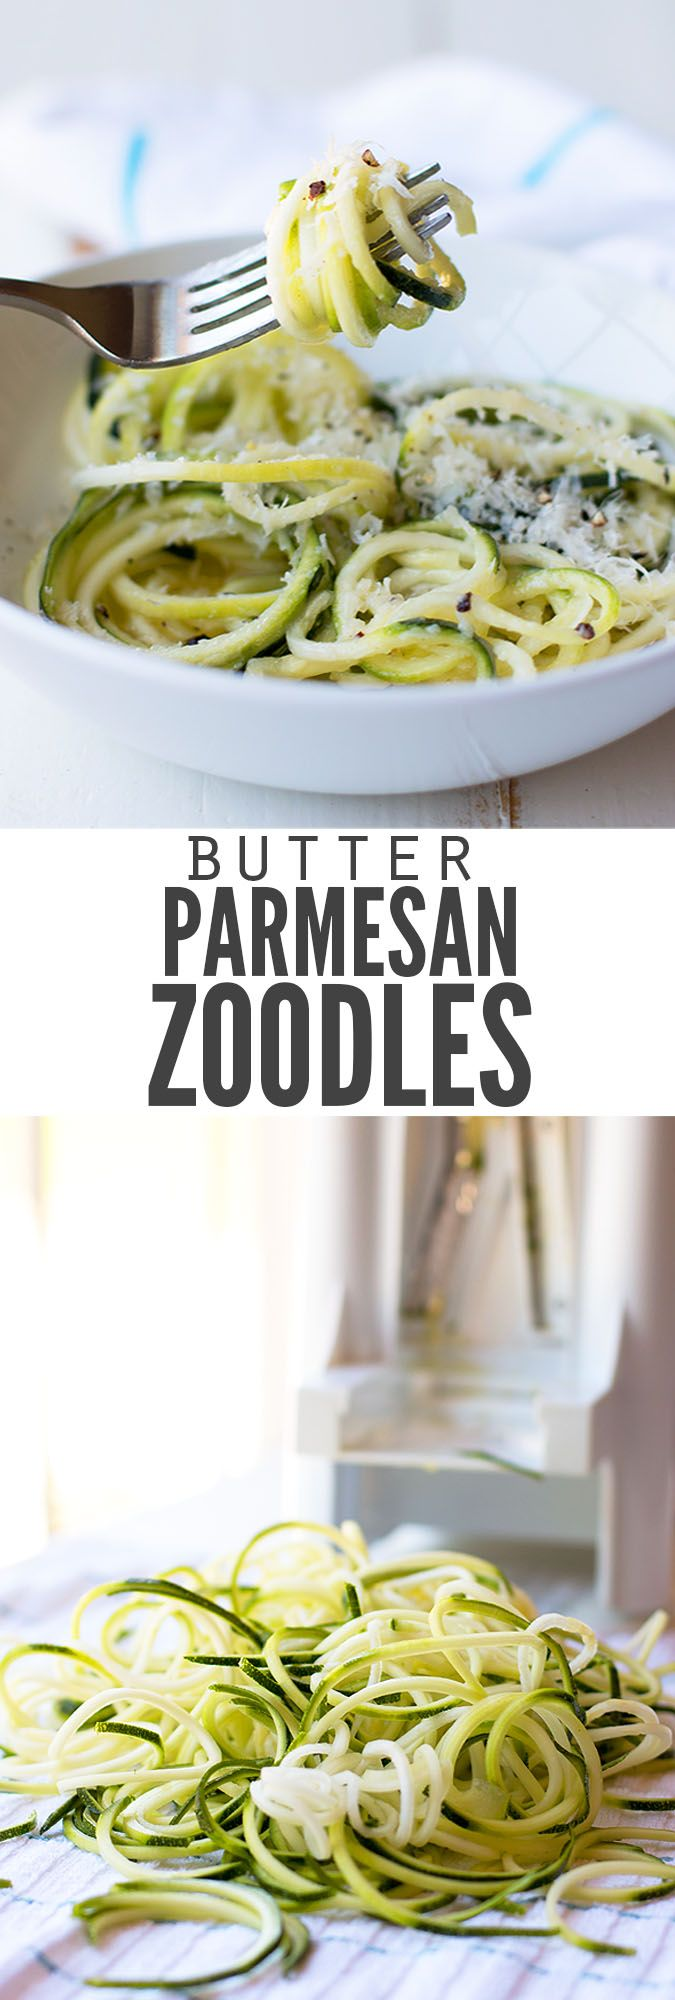 No-cook butter Parmesan zucchini noodles (zoodles) are ready in just 10 minutes. Add garlic if you want, but it's a great light dish for hot summer days! :: DontWastetheCrumbs.com